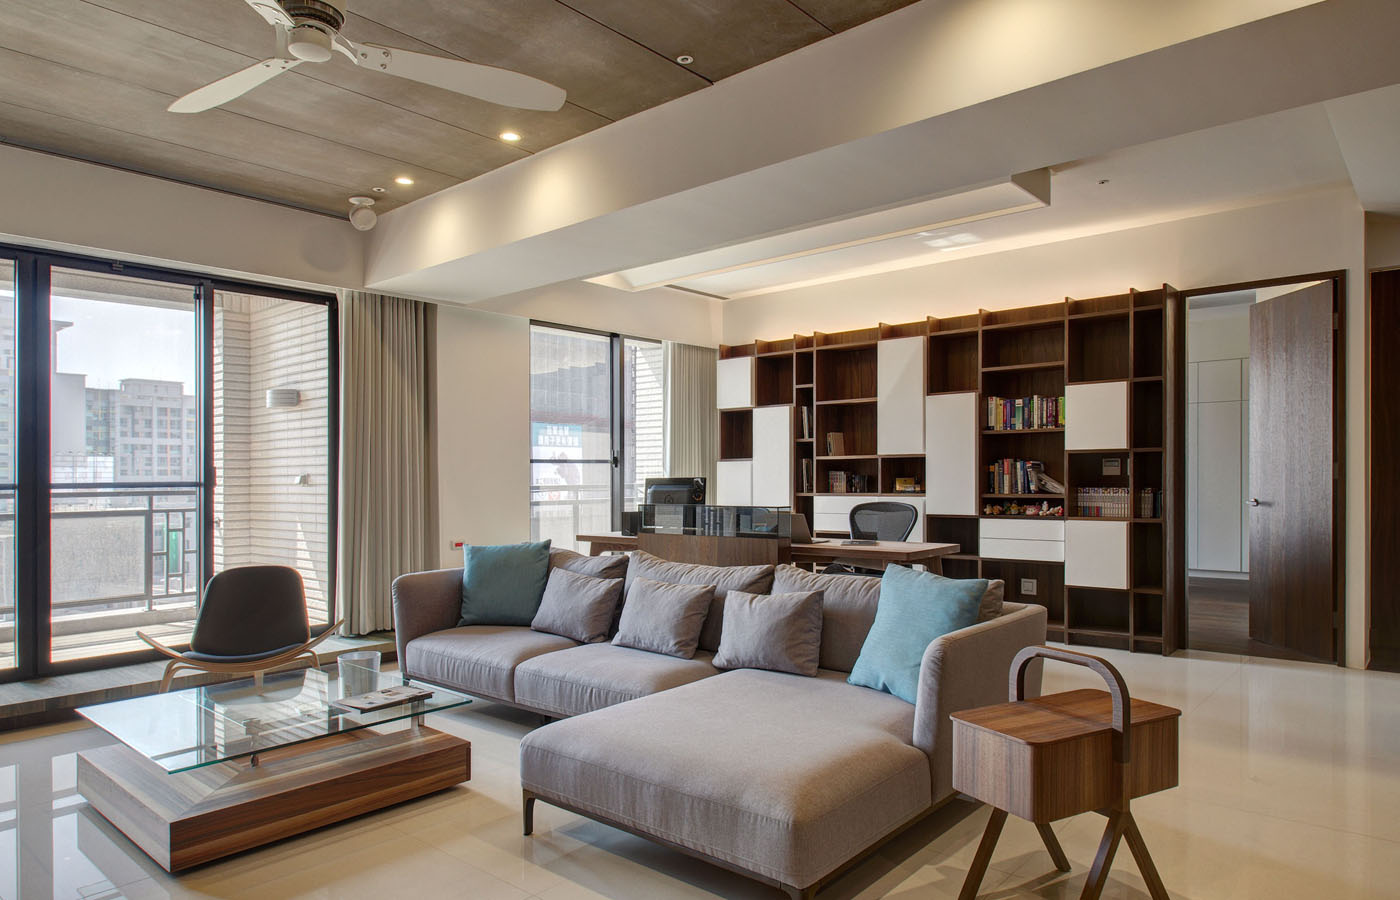 Modern Apartment Designs By Phase6 Design Studio Interiors Inside Ideas Interiors design about Everything [magnanprojects.com]